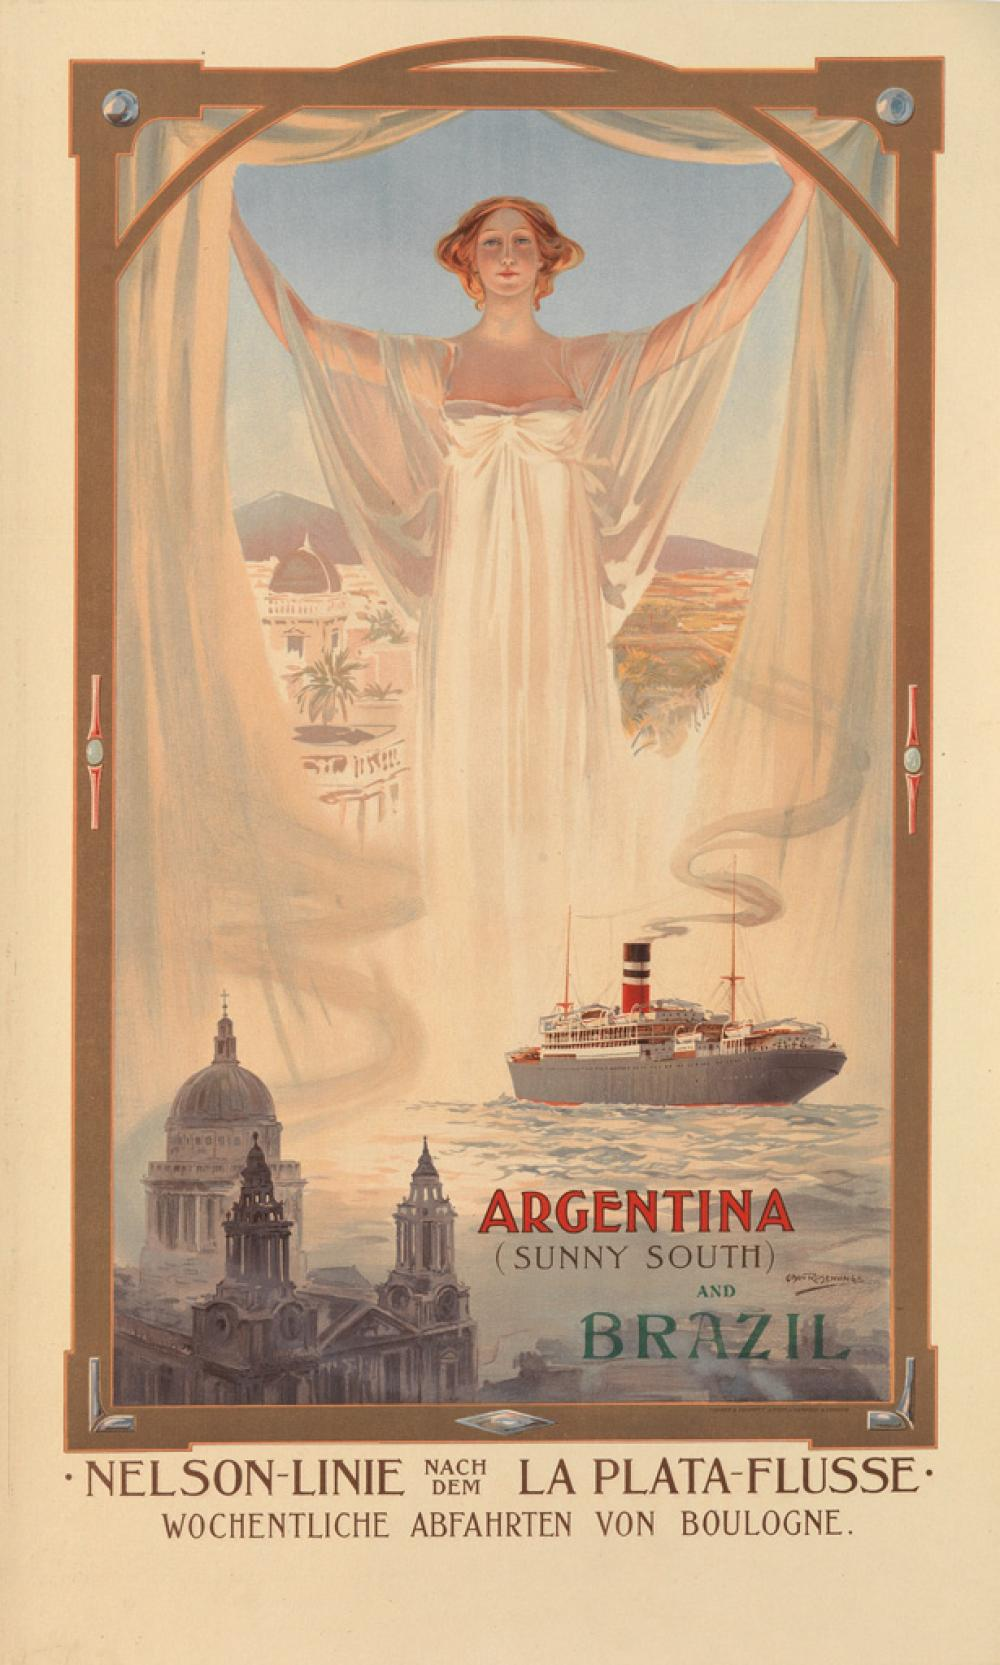 ODIN ROSENVINGE (1880-1957). ARGENTINA (SUNNY SOUTH) AND BRAZIL. Circa 1910. 33x20 inches, 84x50 cm. Turner & Dunnett, Liverpool.